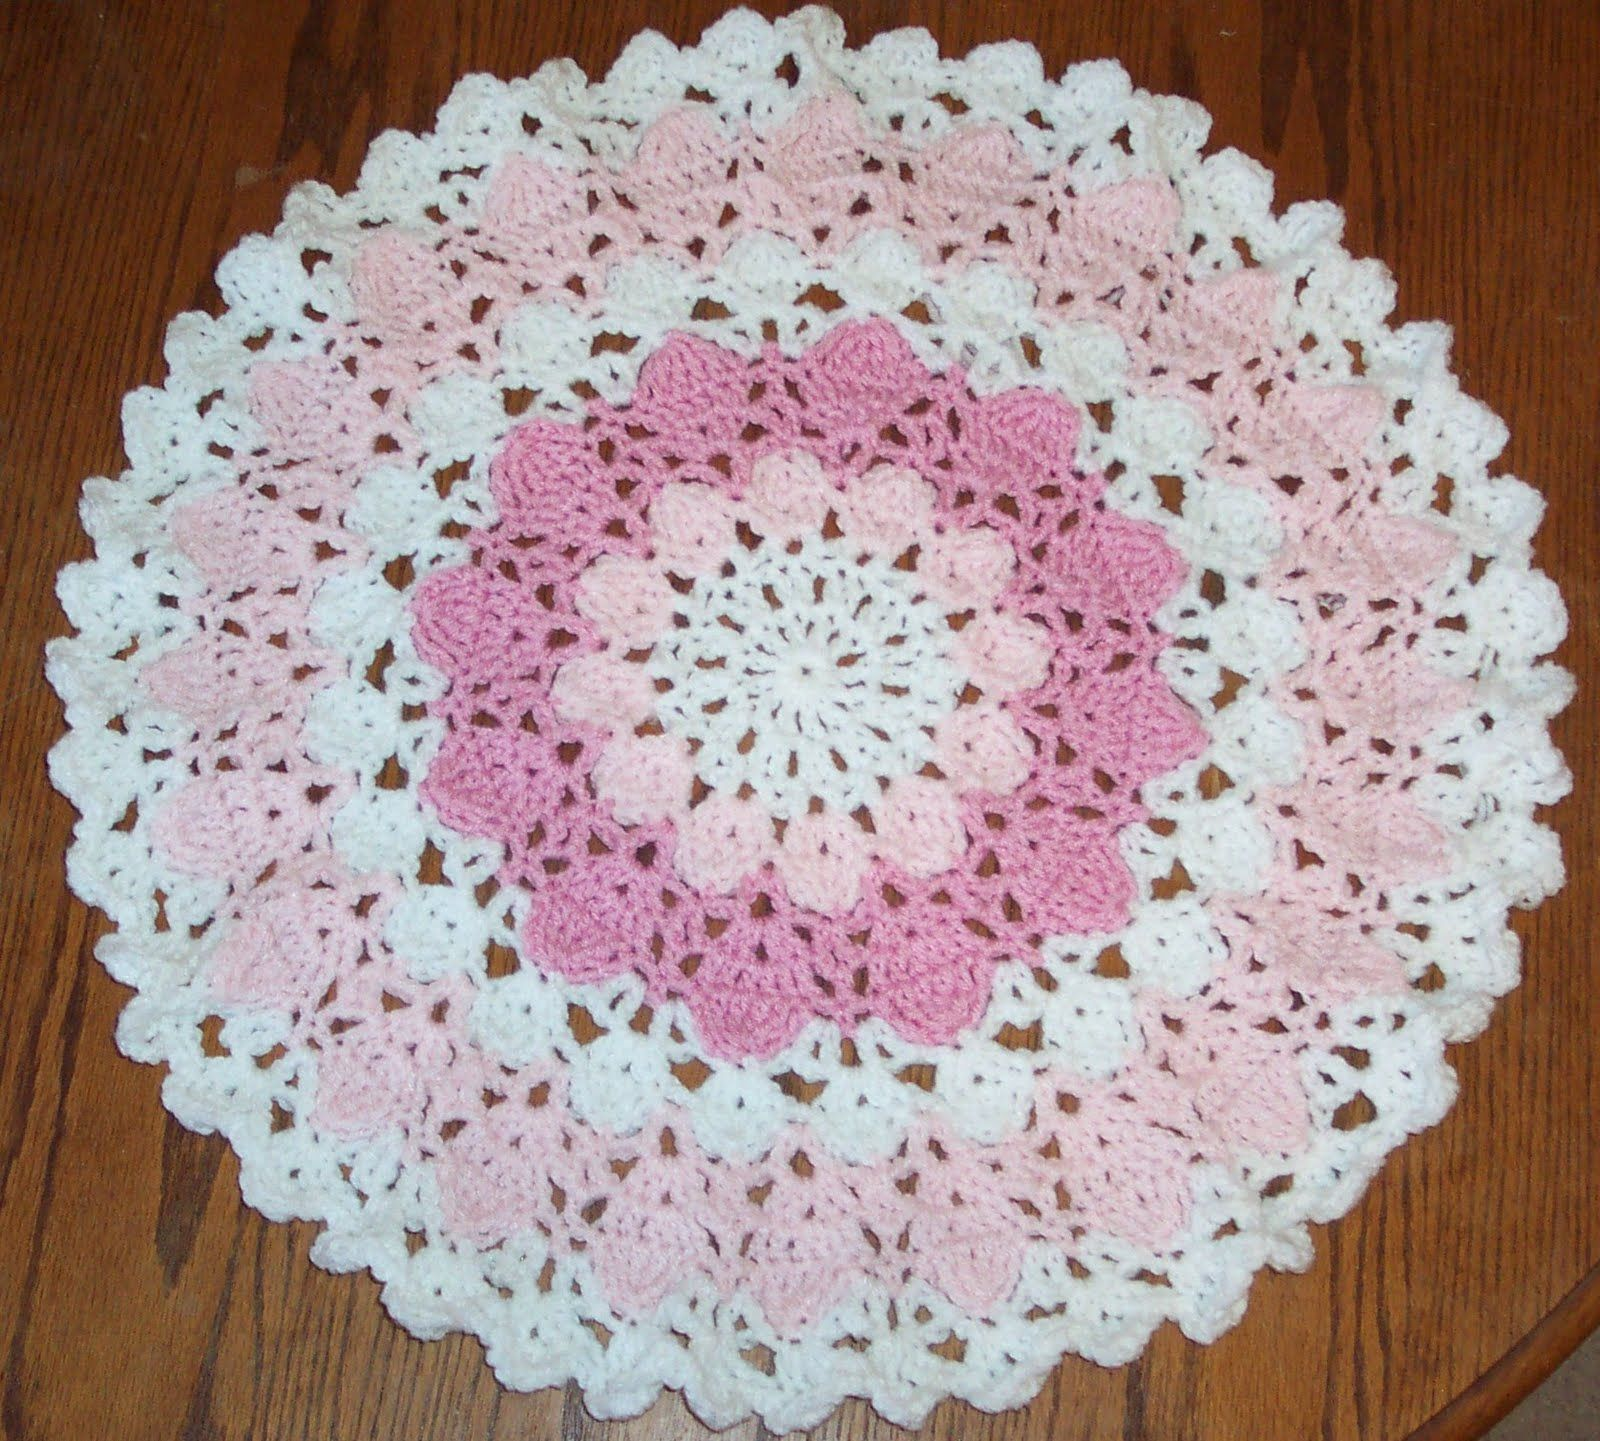 Doily Baby Blanket Crochet Pattern | Red Heart | Knitting and ...